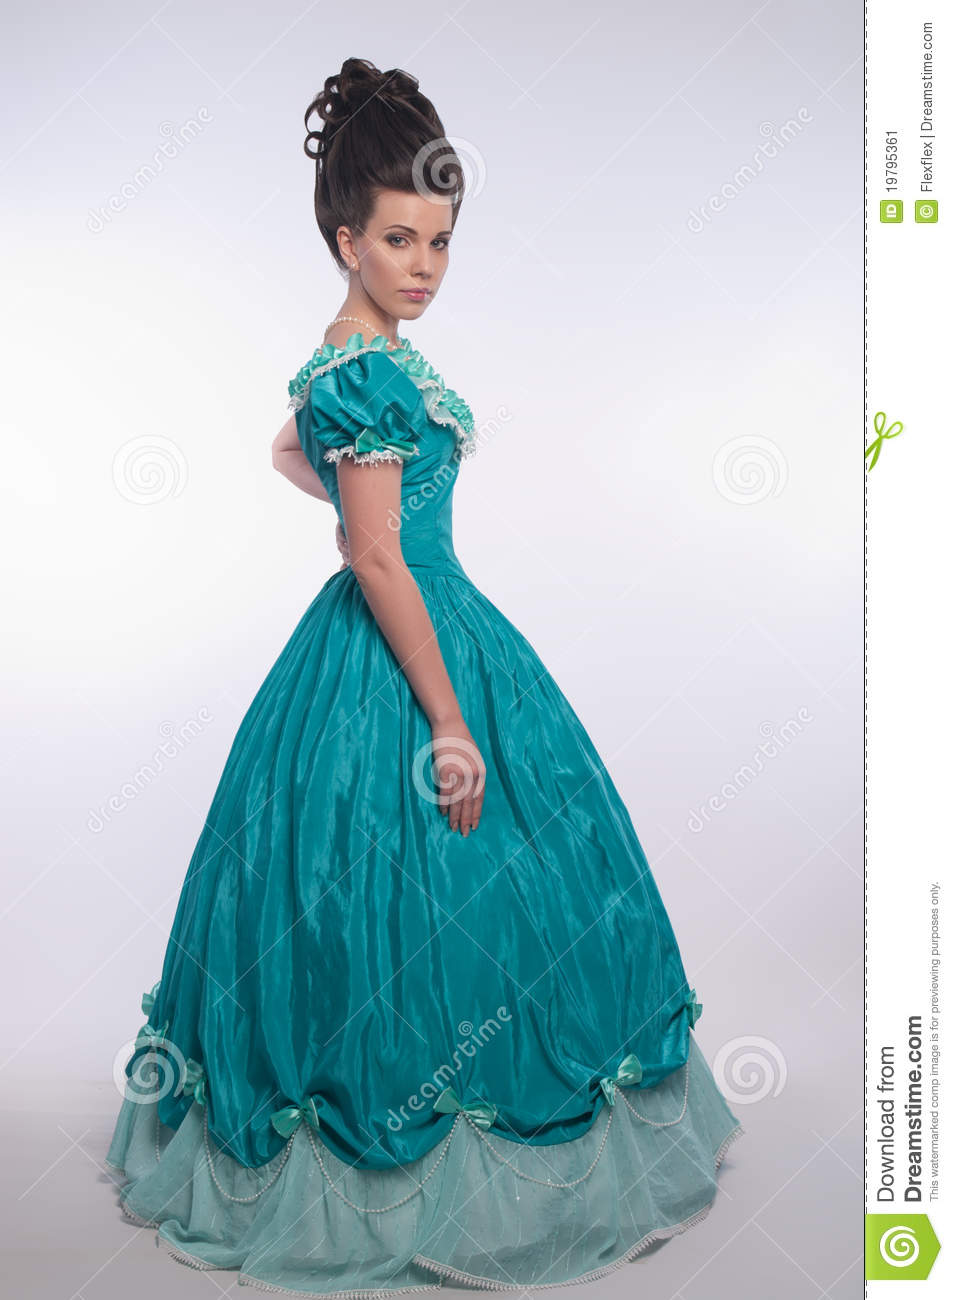 Old Fashioned Girl In Cyan Dress Stock Image Image 19795361